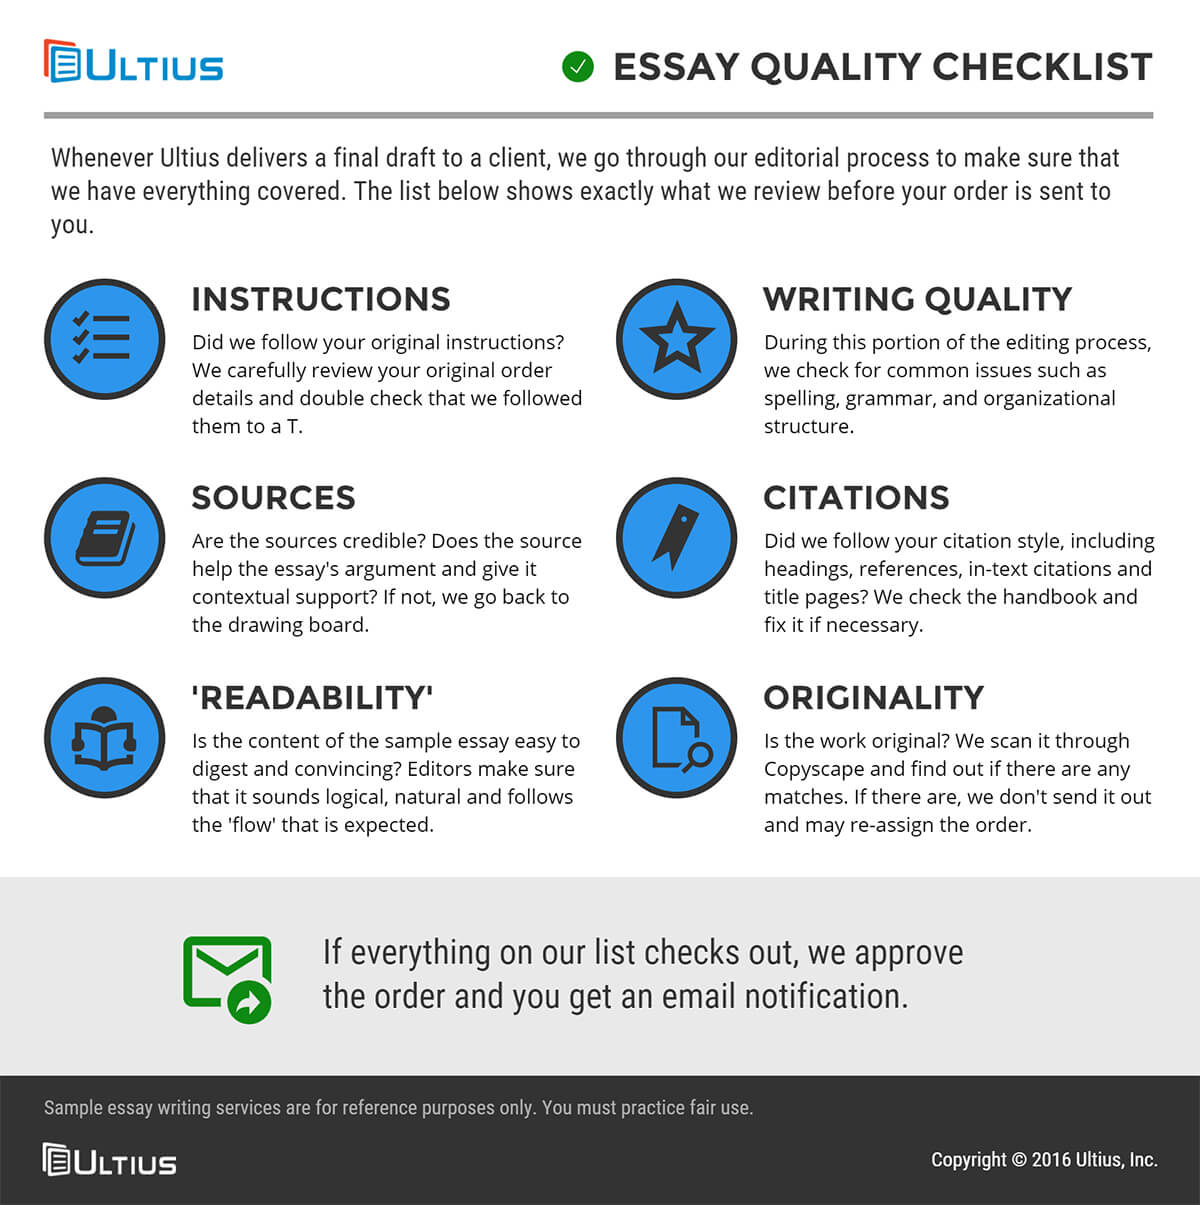 reputable essay writing services